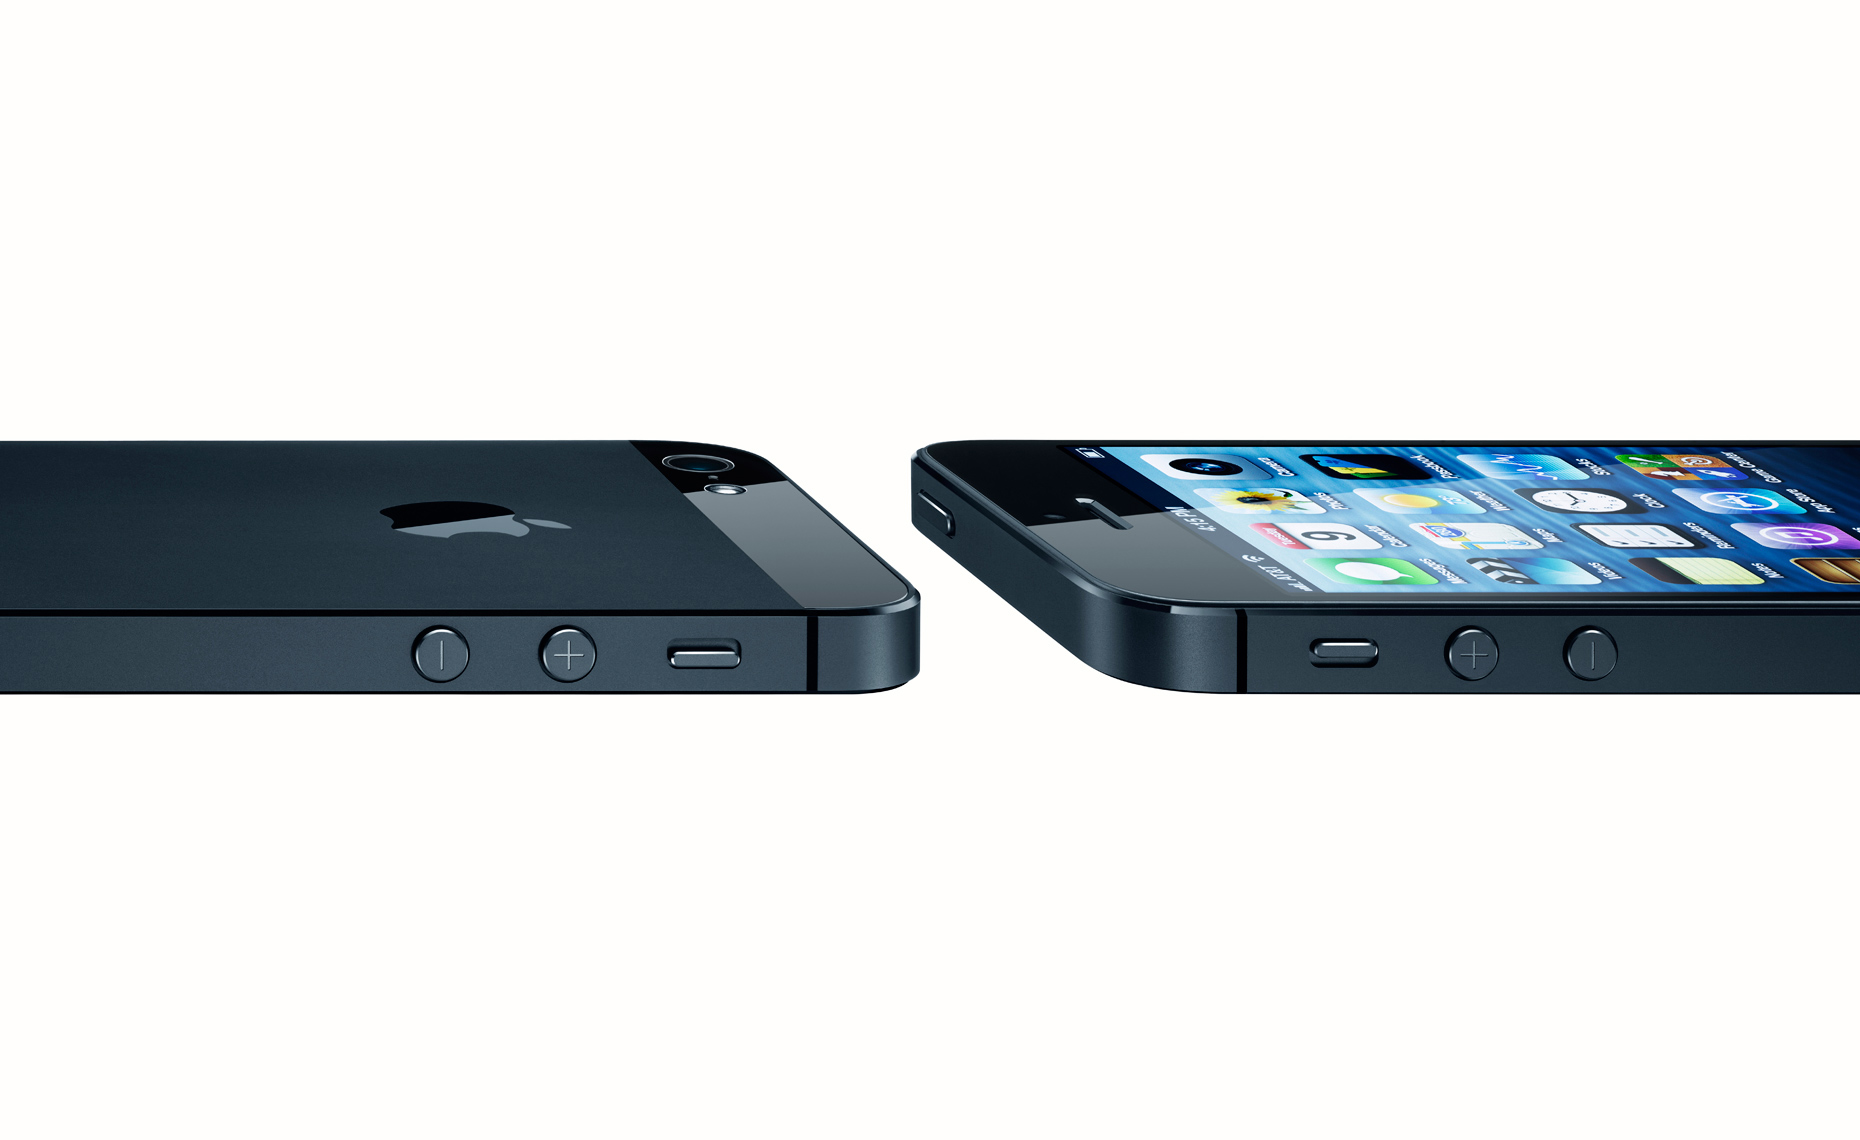 HF Apple iPhone5 Black combo.jpg